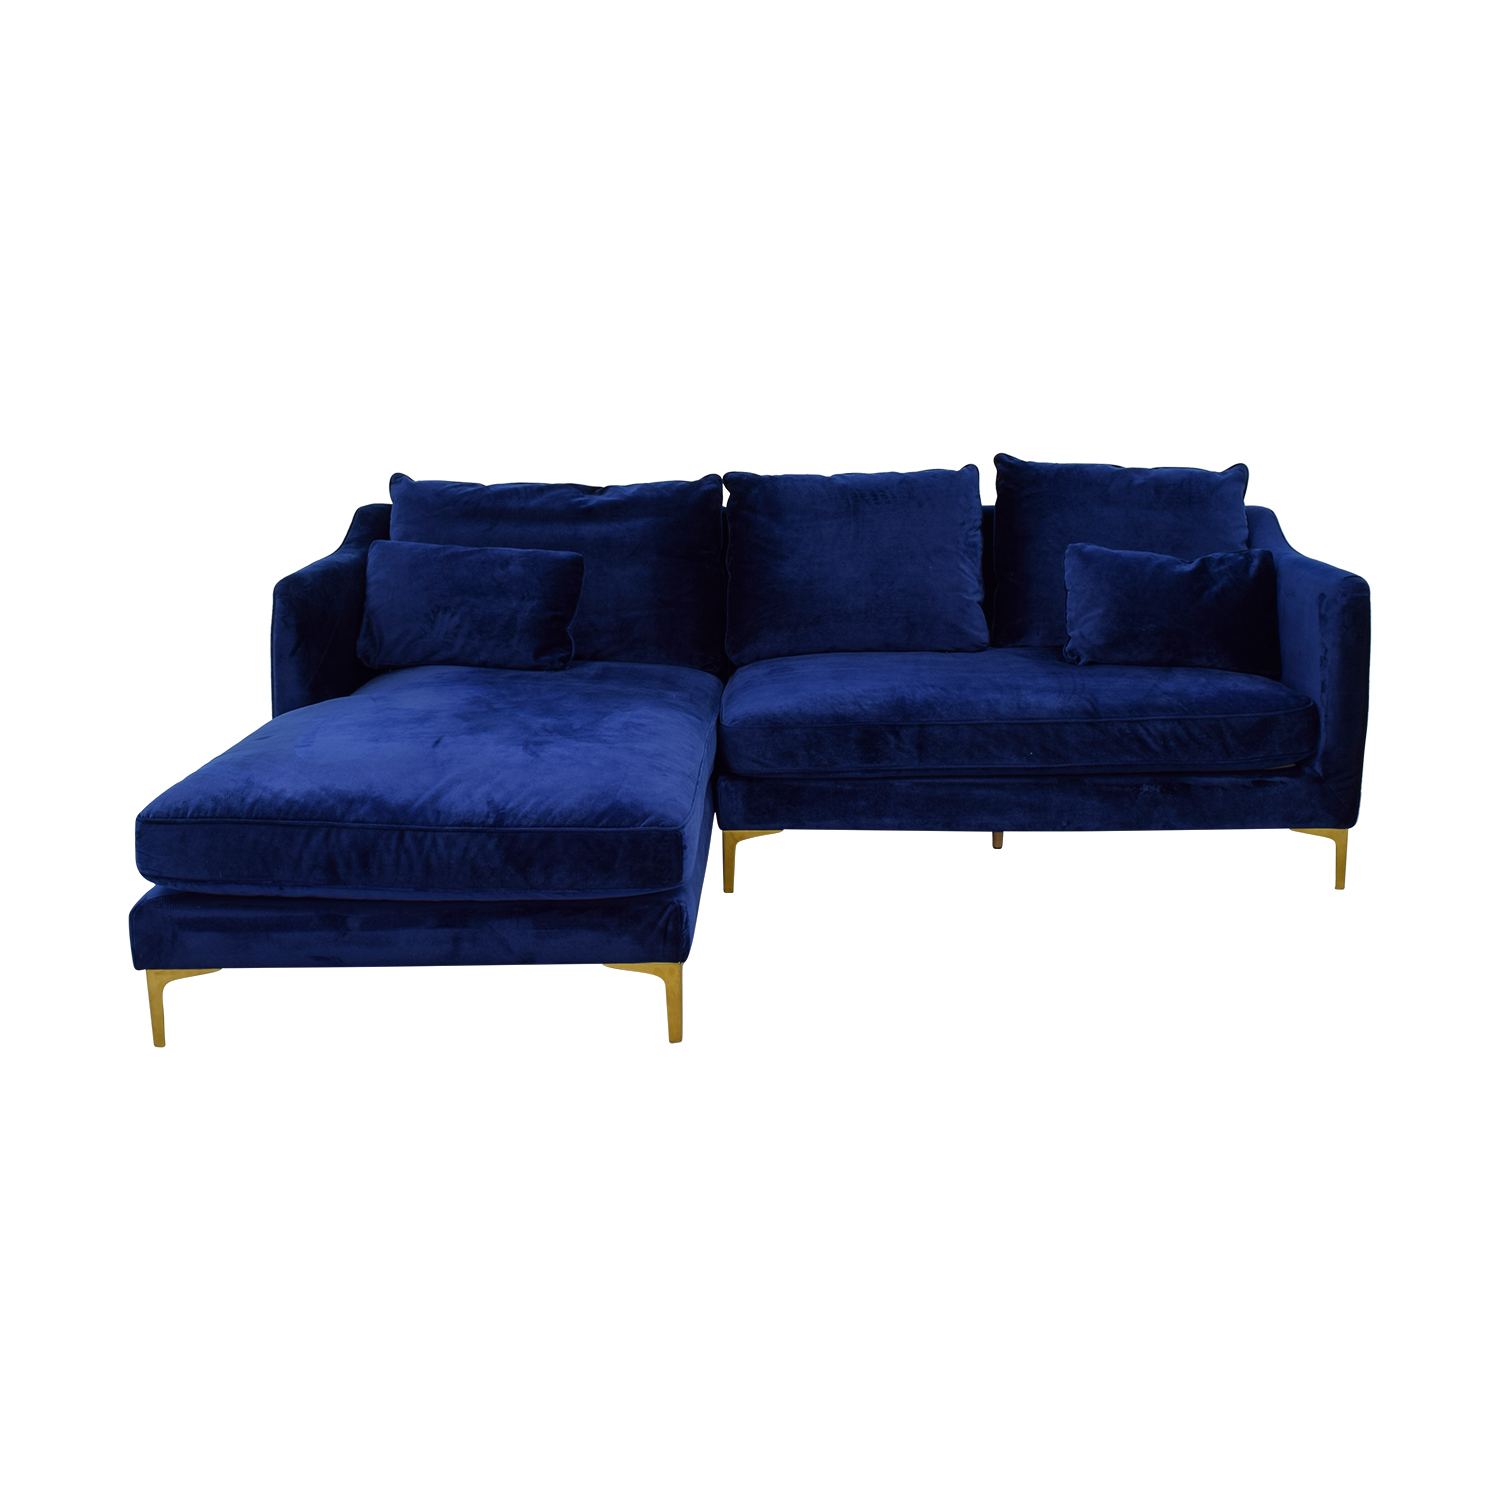 Caitlin Oxford Blue Left Chaise Sectional Sectionals